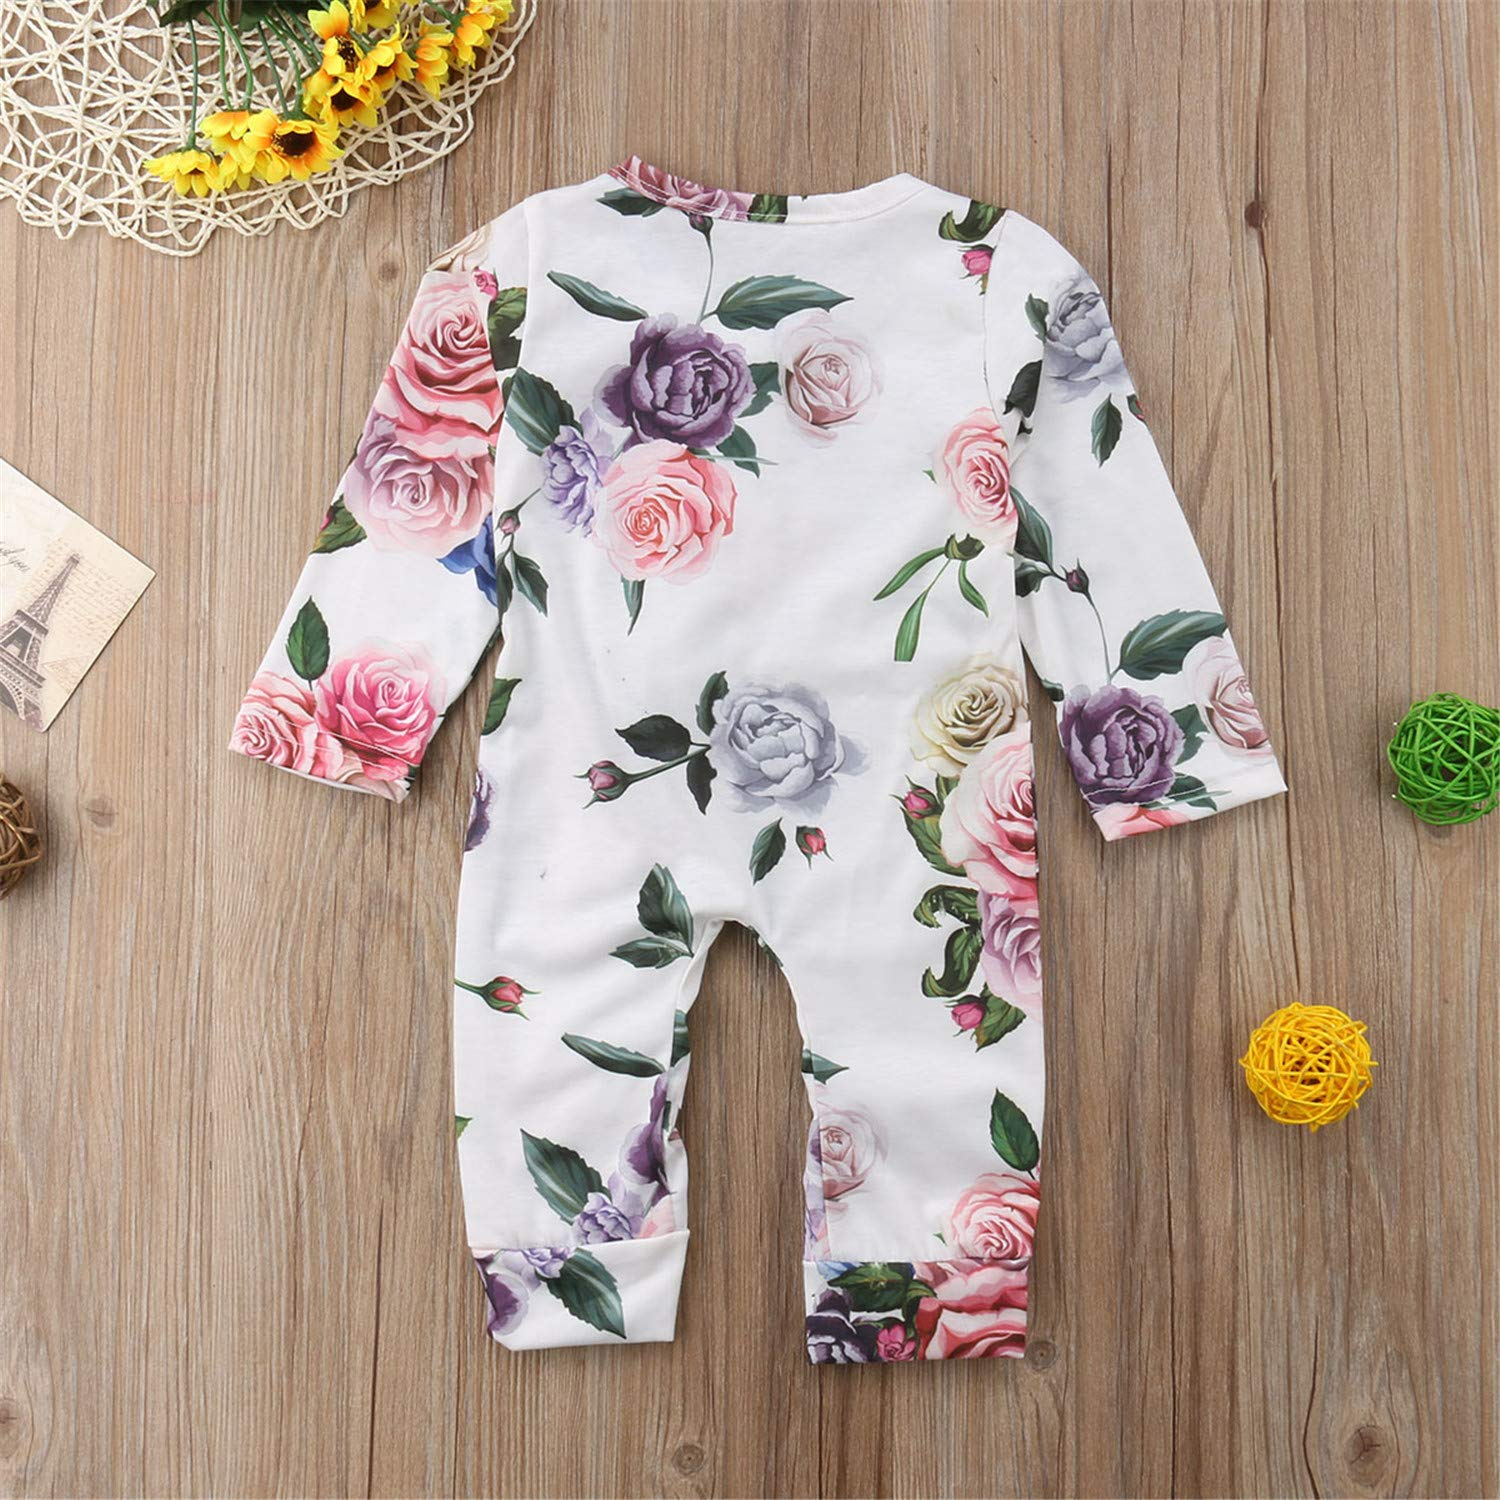 Newborn Infant Baby Girls Romper Long Sleeve Ruffles Single Breasted Floral Jumpsuits